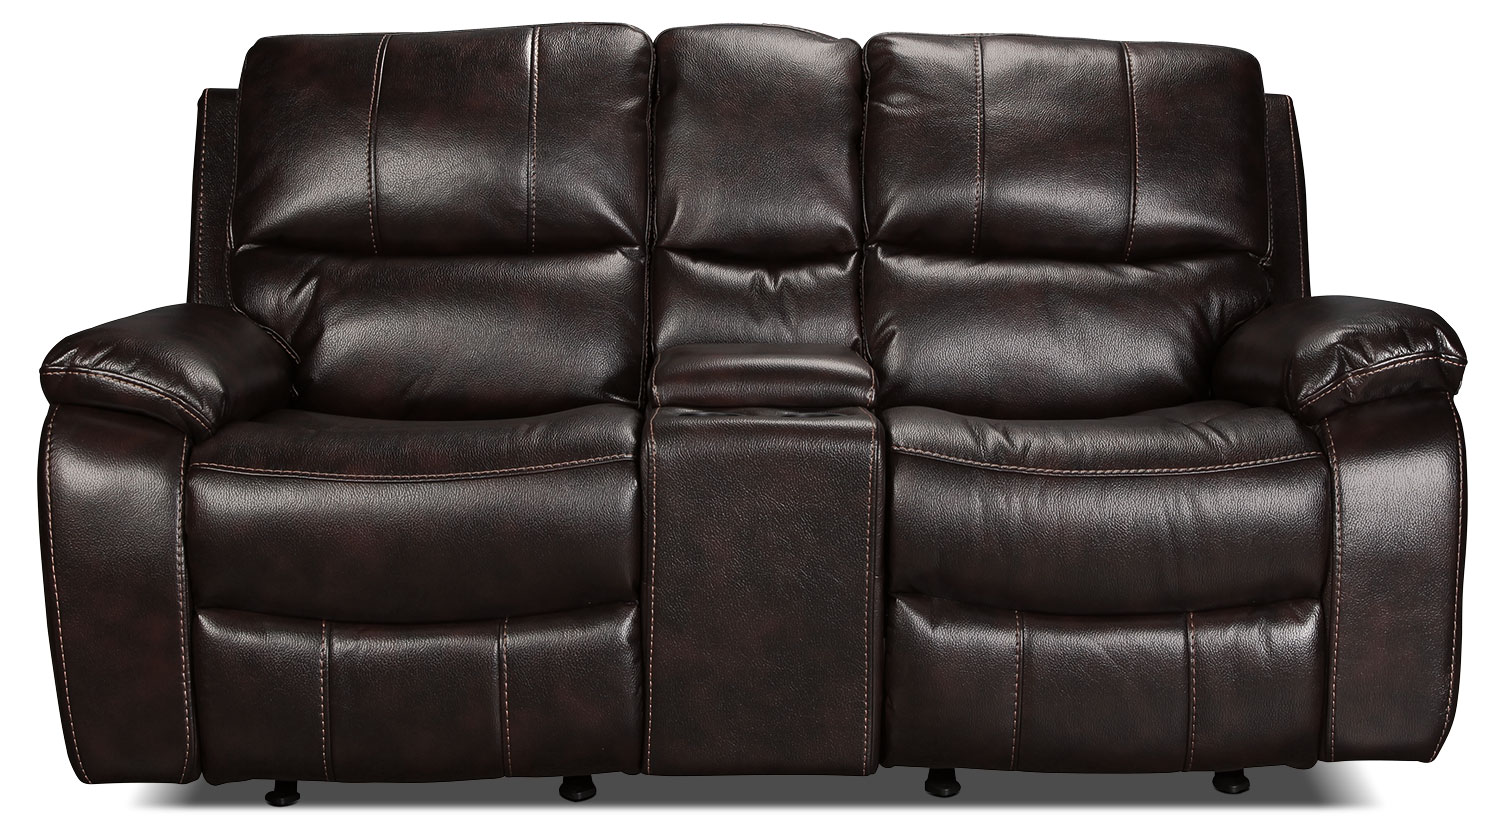 Kimberlee Power Reclining Loveseat with Console - Dark Brown